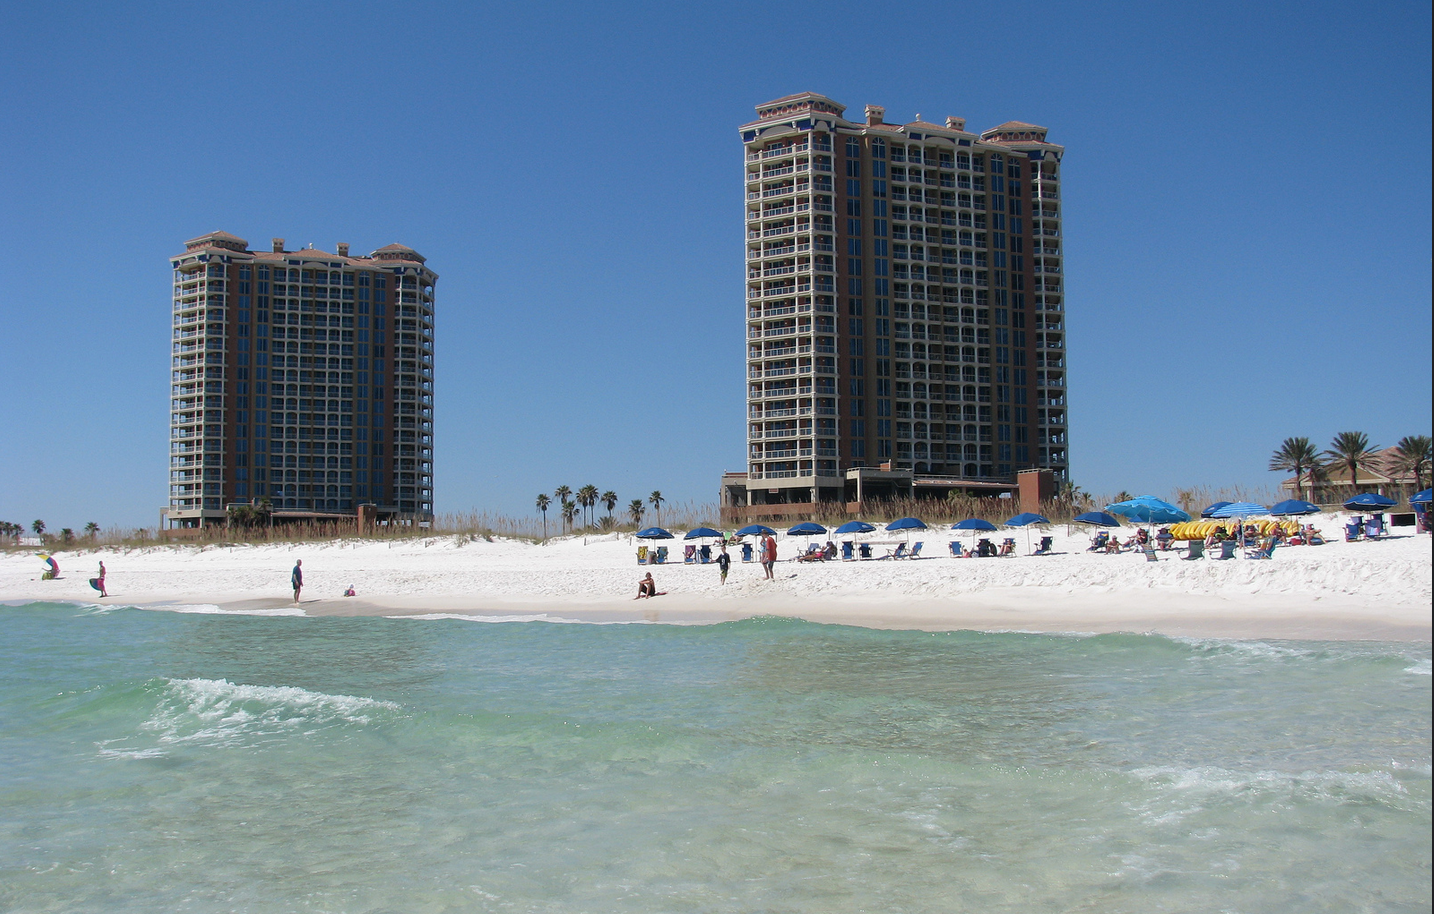 On The Beach In Pensacola. Photo Credit: Jason Meredith / Flickr